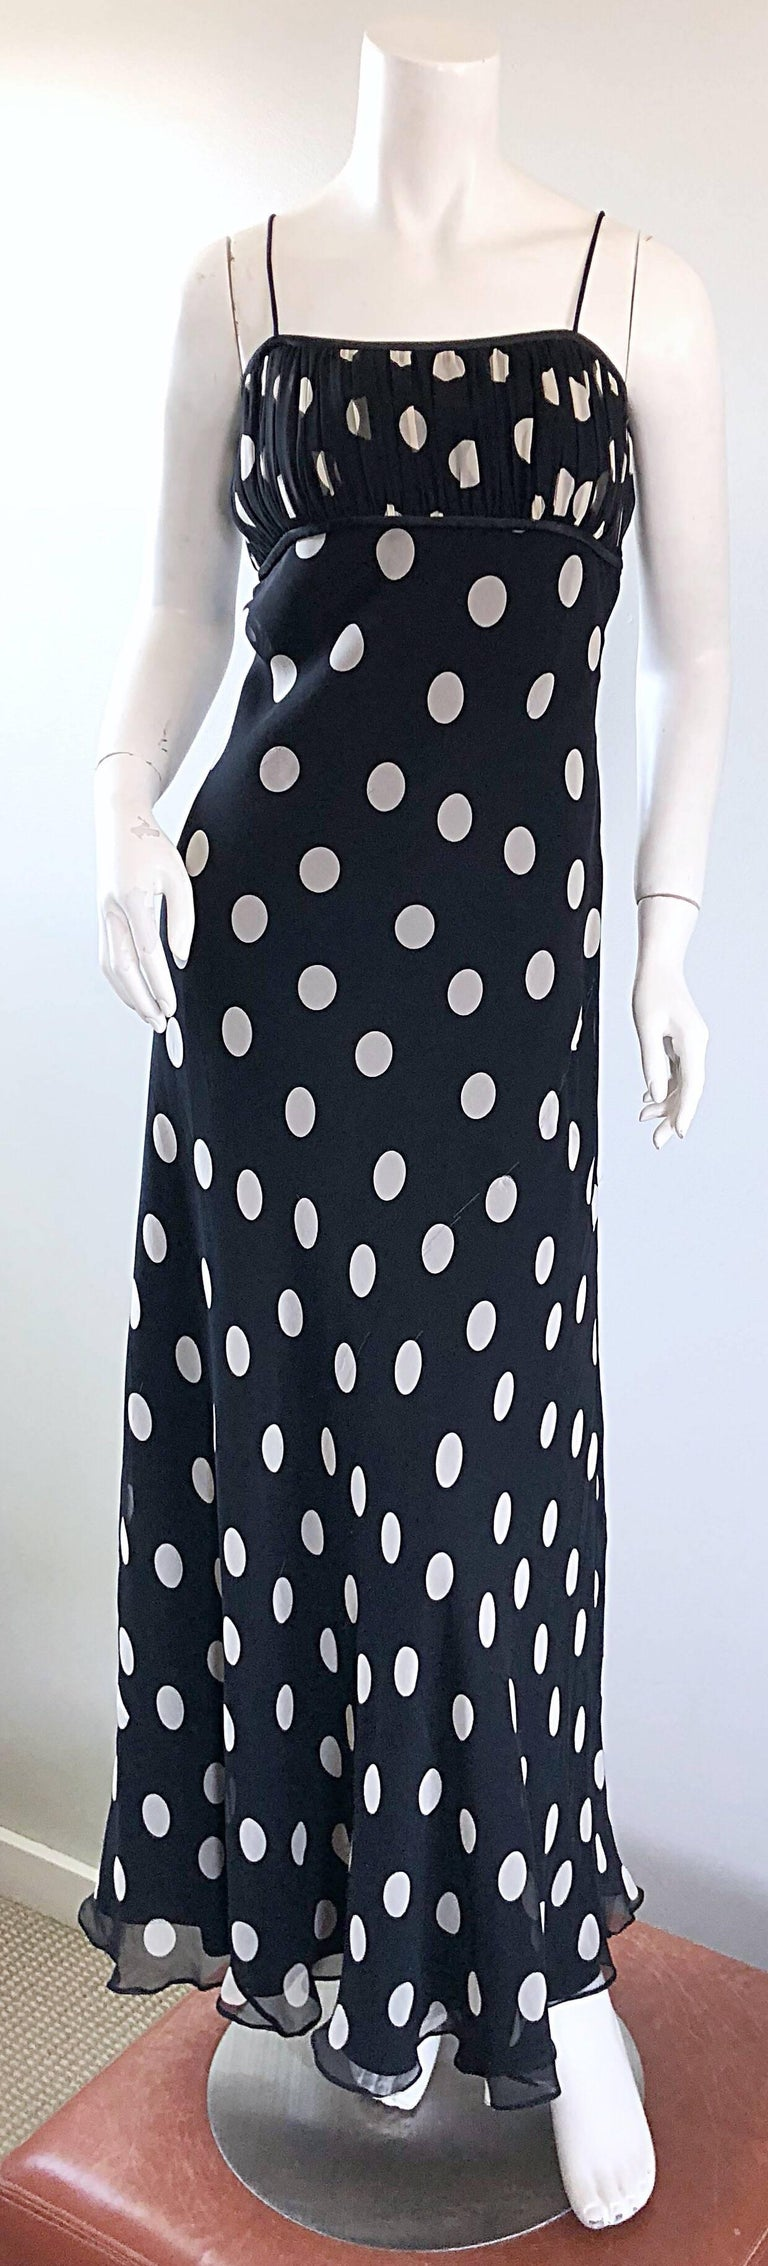 Chic vintage 90s ABRIELE MELANO black and white polka dot silk chiffon gown! Classic oversized polka dots on a spaghetti strap full length dress. Pleated details on the empire bodice with a forgiving loose fitting skirt. Hidden zipper up the side